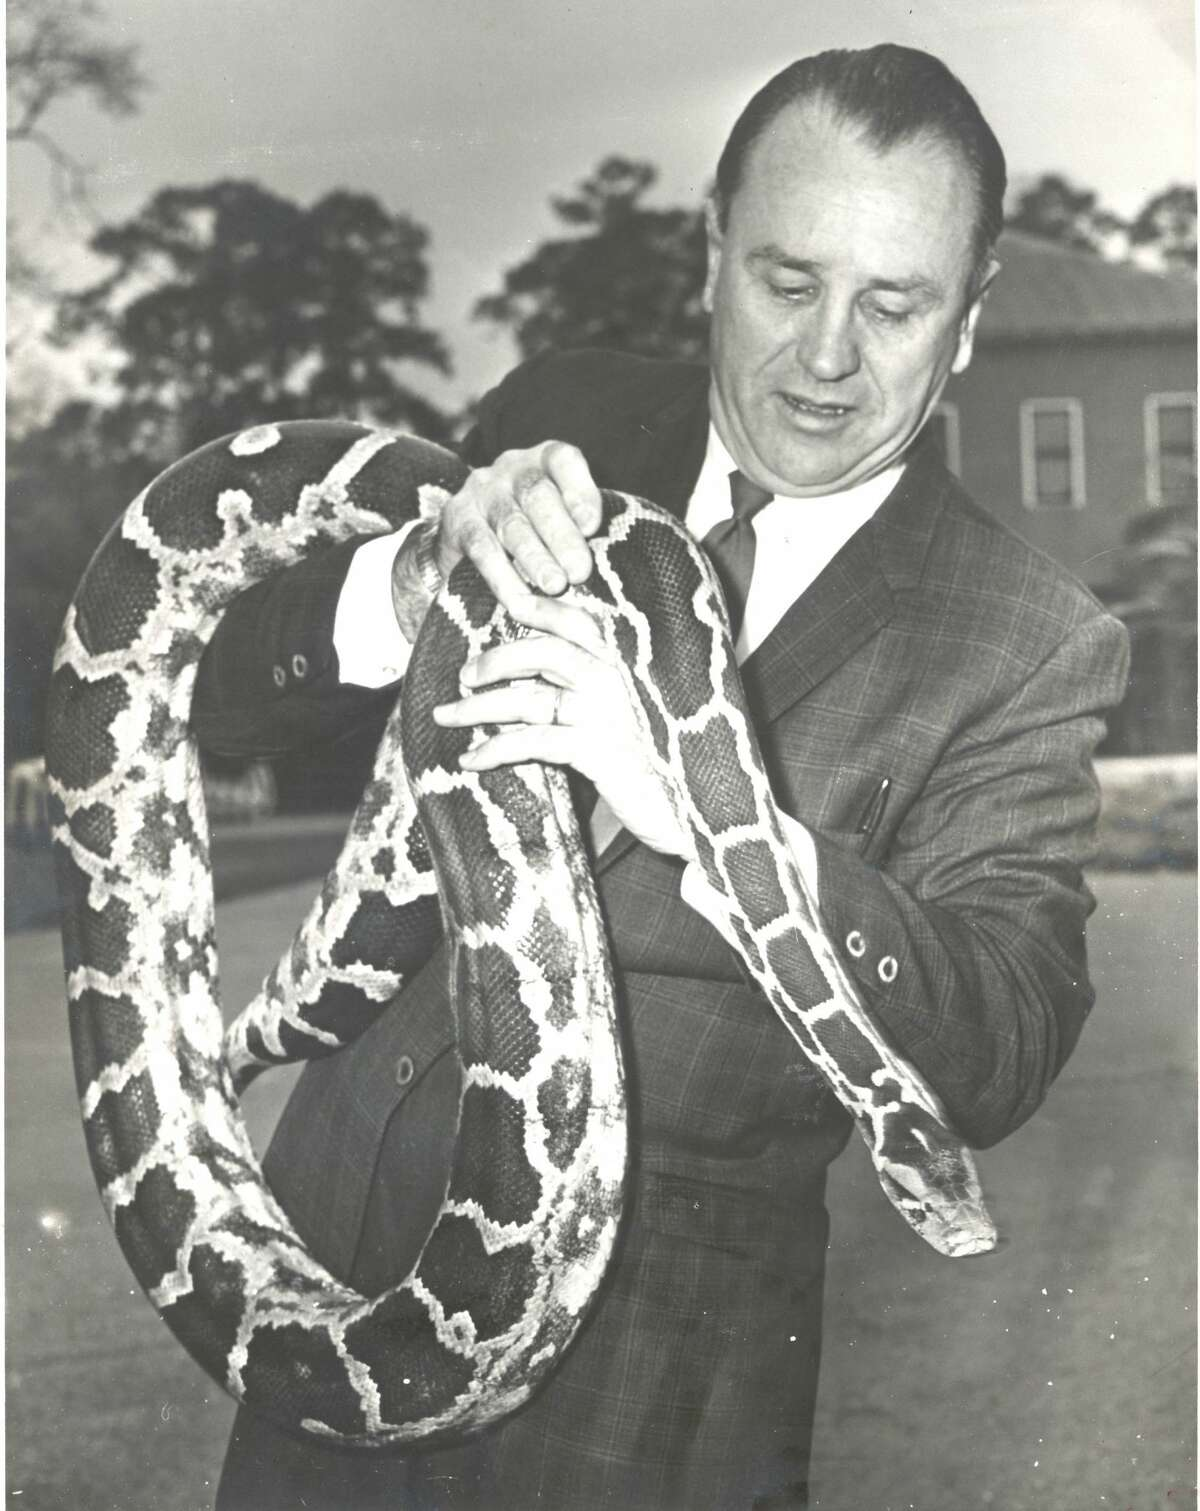 February 1970: The traveling python of River Oaks, a fugitive from the suitcase of Los Angeles Zoo curator Bill Turner, is clutched here by John Werler, curator of the Hermann Park Zoo. Werler doesn't want the 9-foot snake-Turner had already tried to trade it to the Houston Zoo--but he has agreed to keep it until his owner takes him home. Police were dubious about taking it to headquarters when they discovered it wandering on Argonne St. on the edge of River Oaks. The snake escaped the suitcase when a burglar robbed the car in which it was being transported. Some burglar got a real surprise.